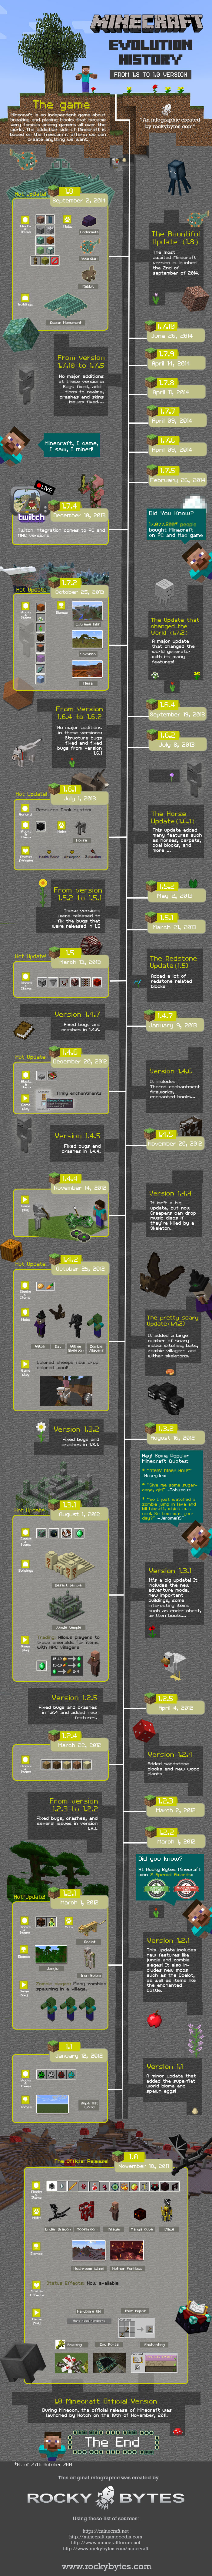 Minecraft Version History infographic